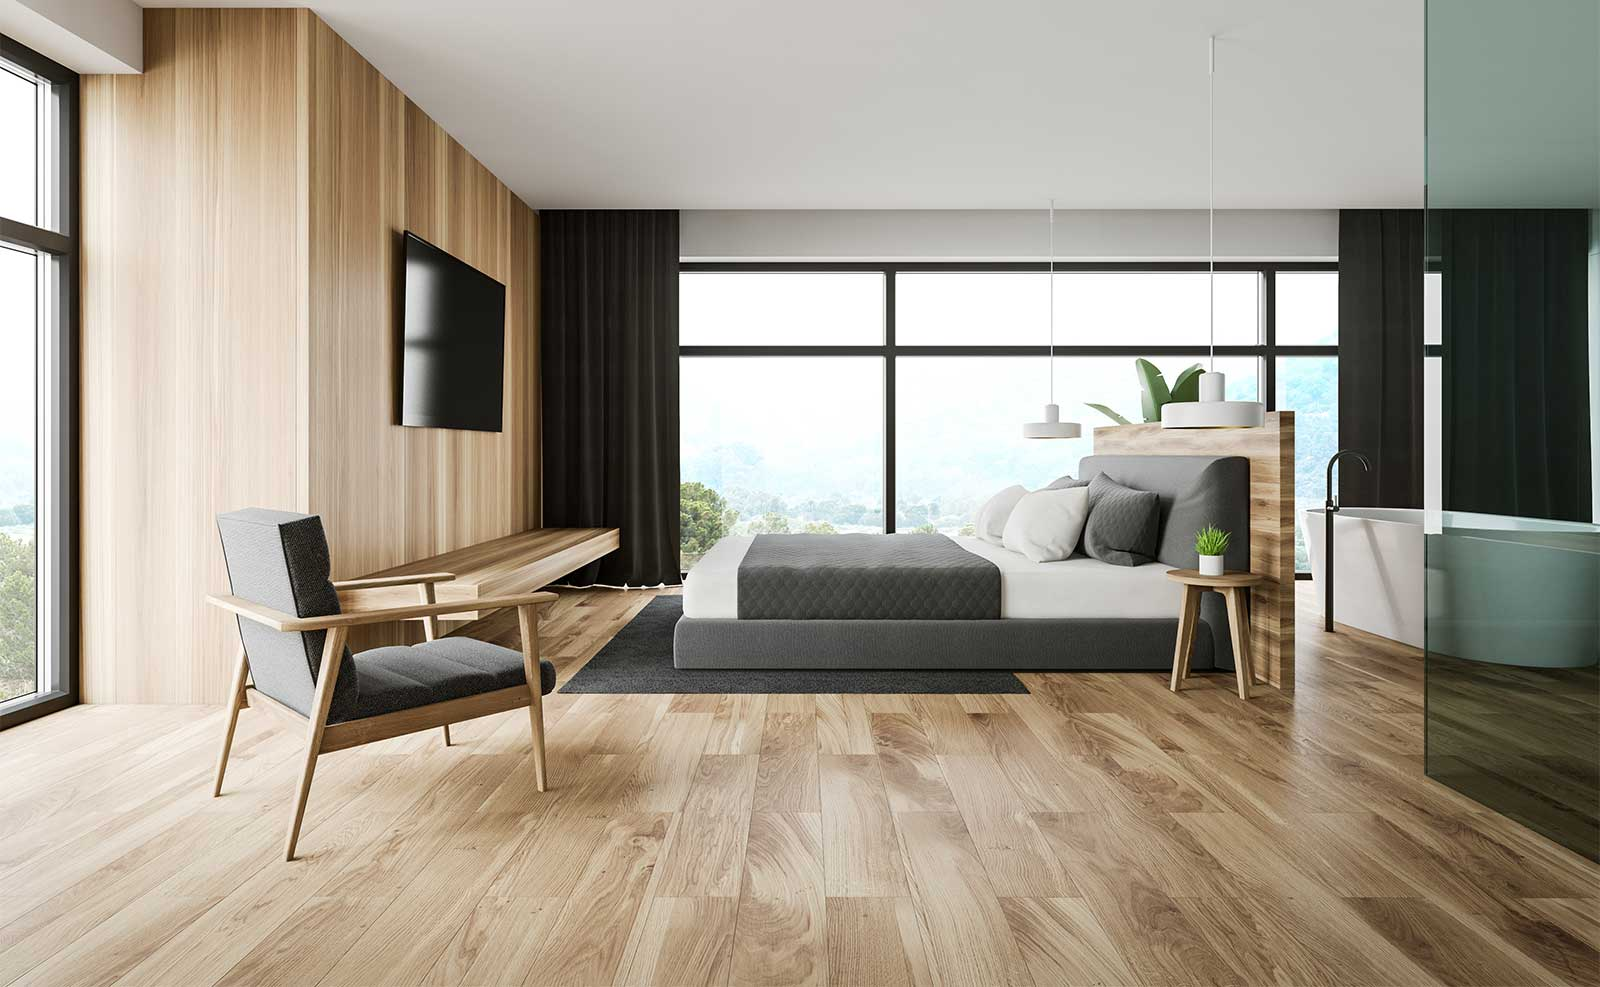 Golden-colored laminate floors in a modern master bedroom and bathroom.